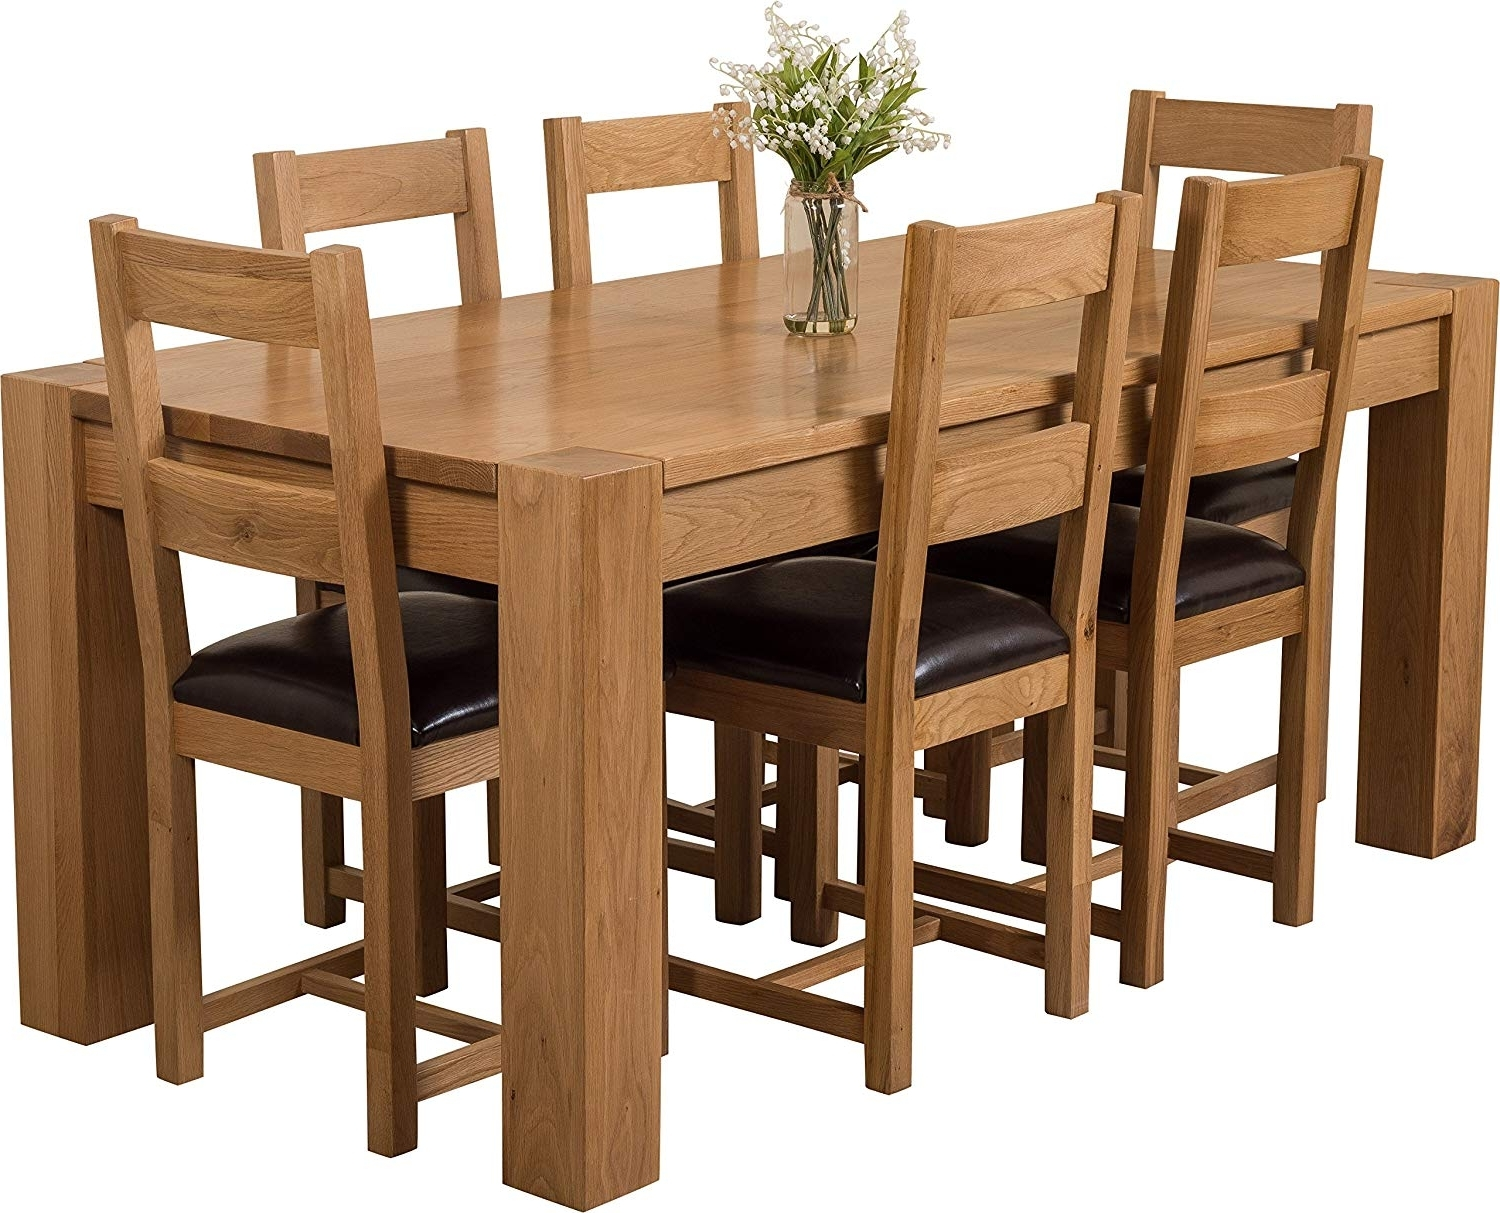 Trendy Hermosa Kensington Dining Table With 6 Chairs With Clear Lacquer In Oak Dining Tables With 6 Chairs (View 19 of 25)